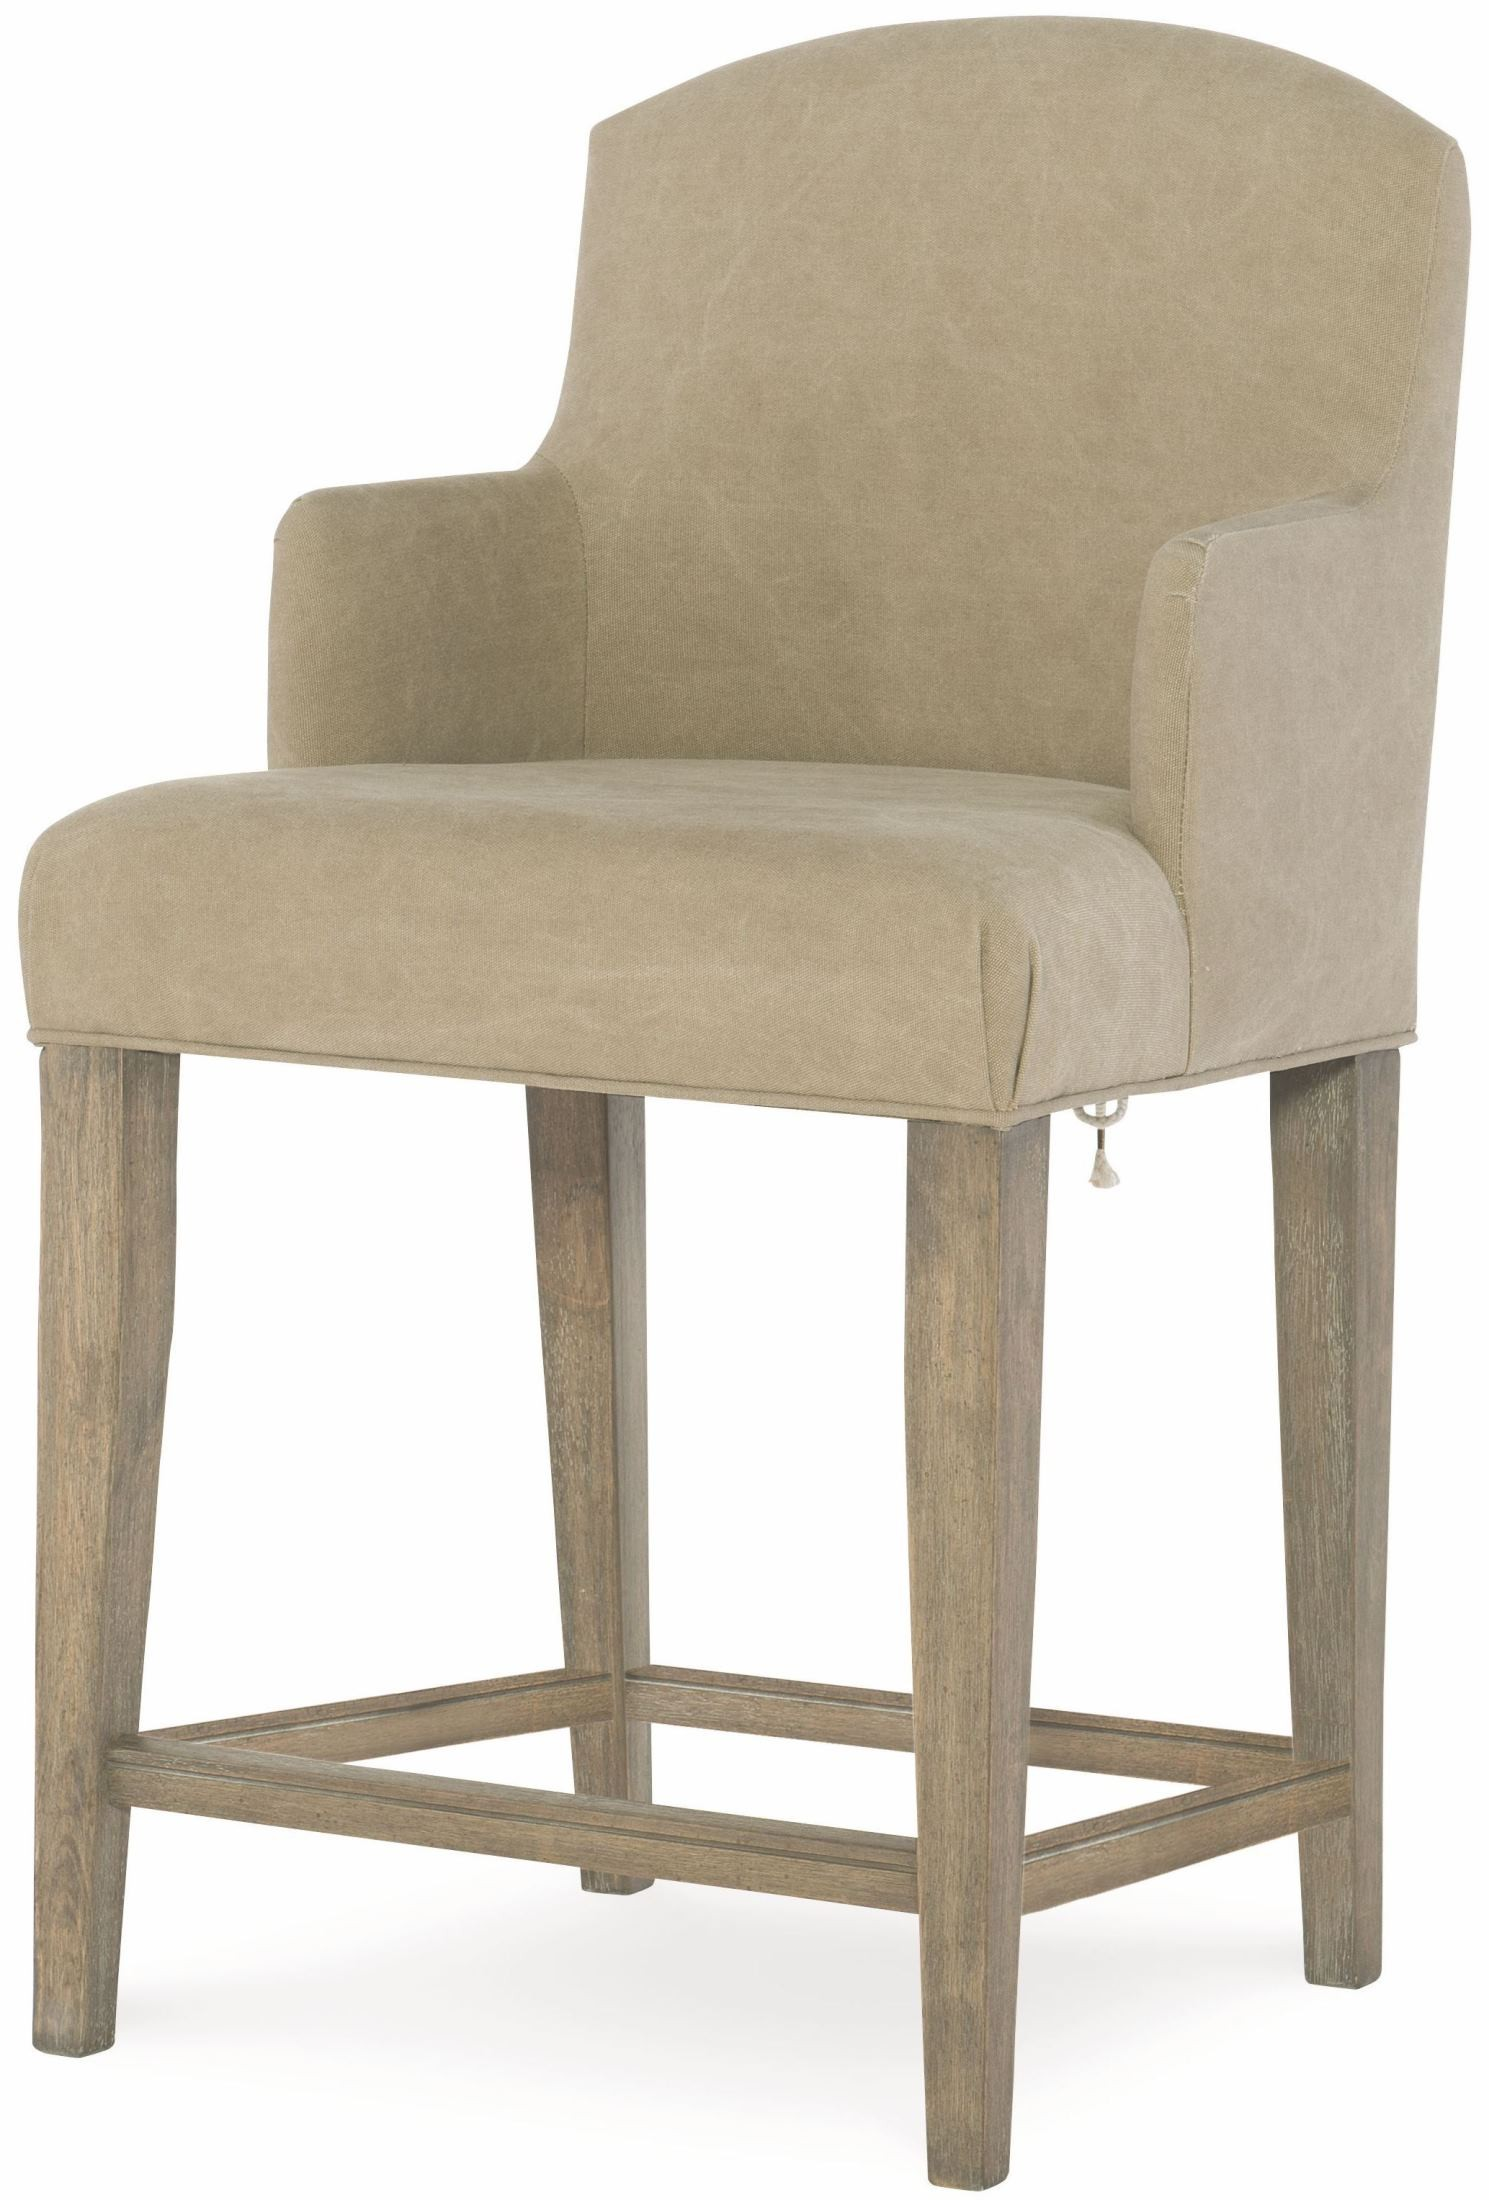 Big Sky By Wendy Bellissimo Weathered Oak Slipcover Arm Chair From Legacy Kids Coleman Furniture